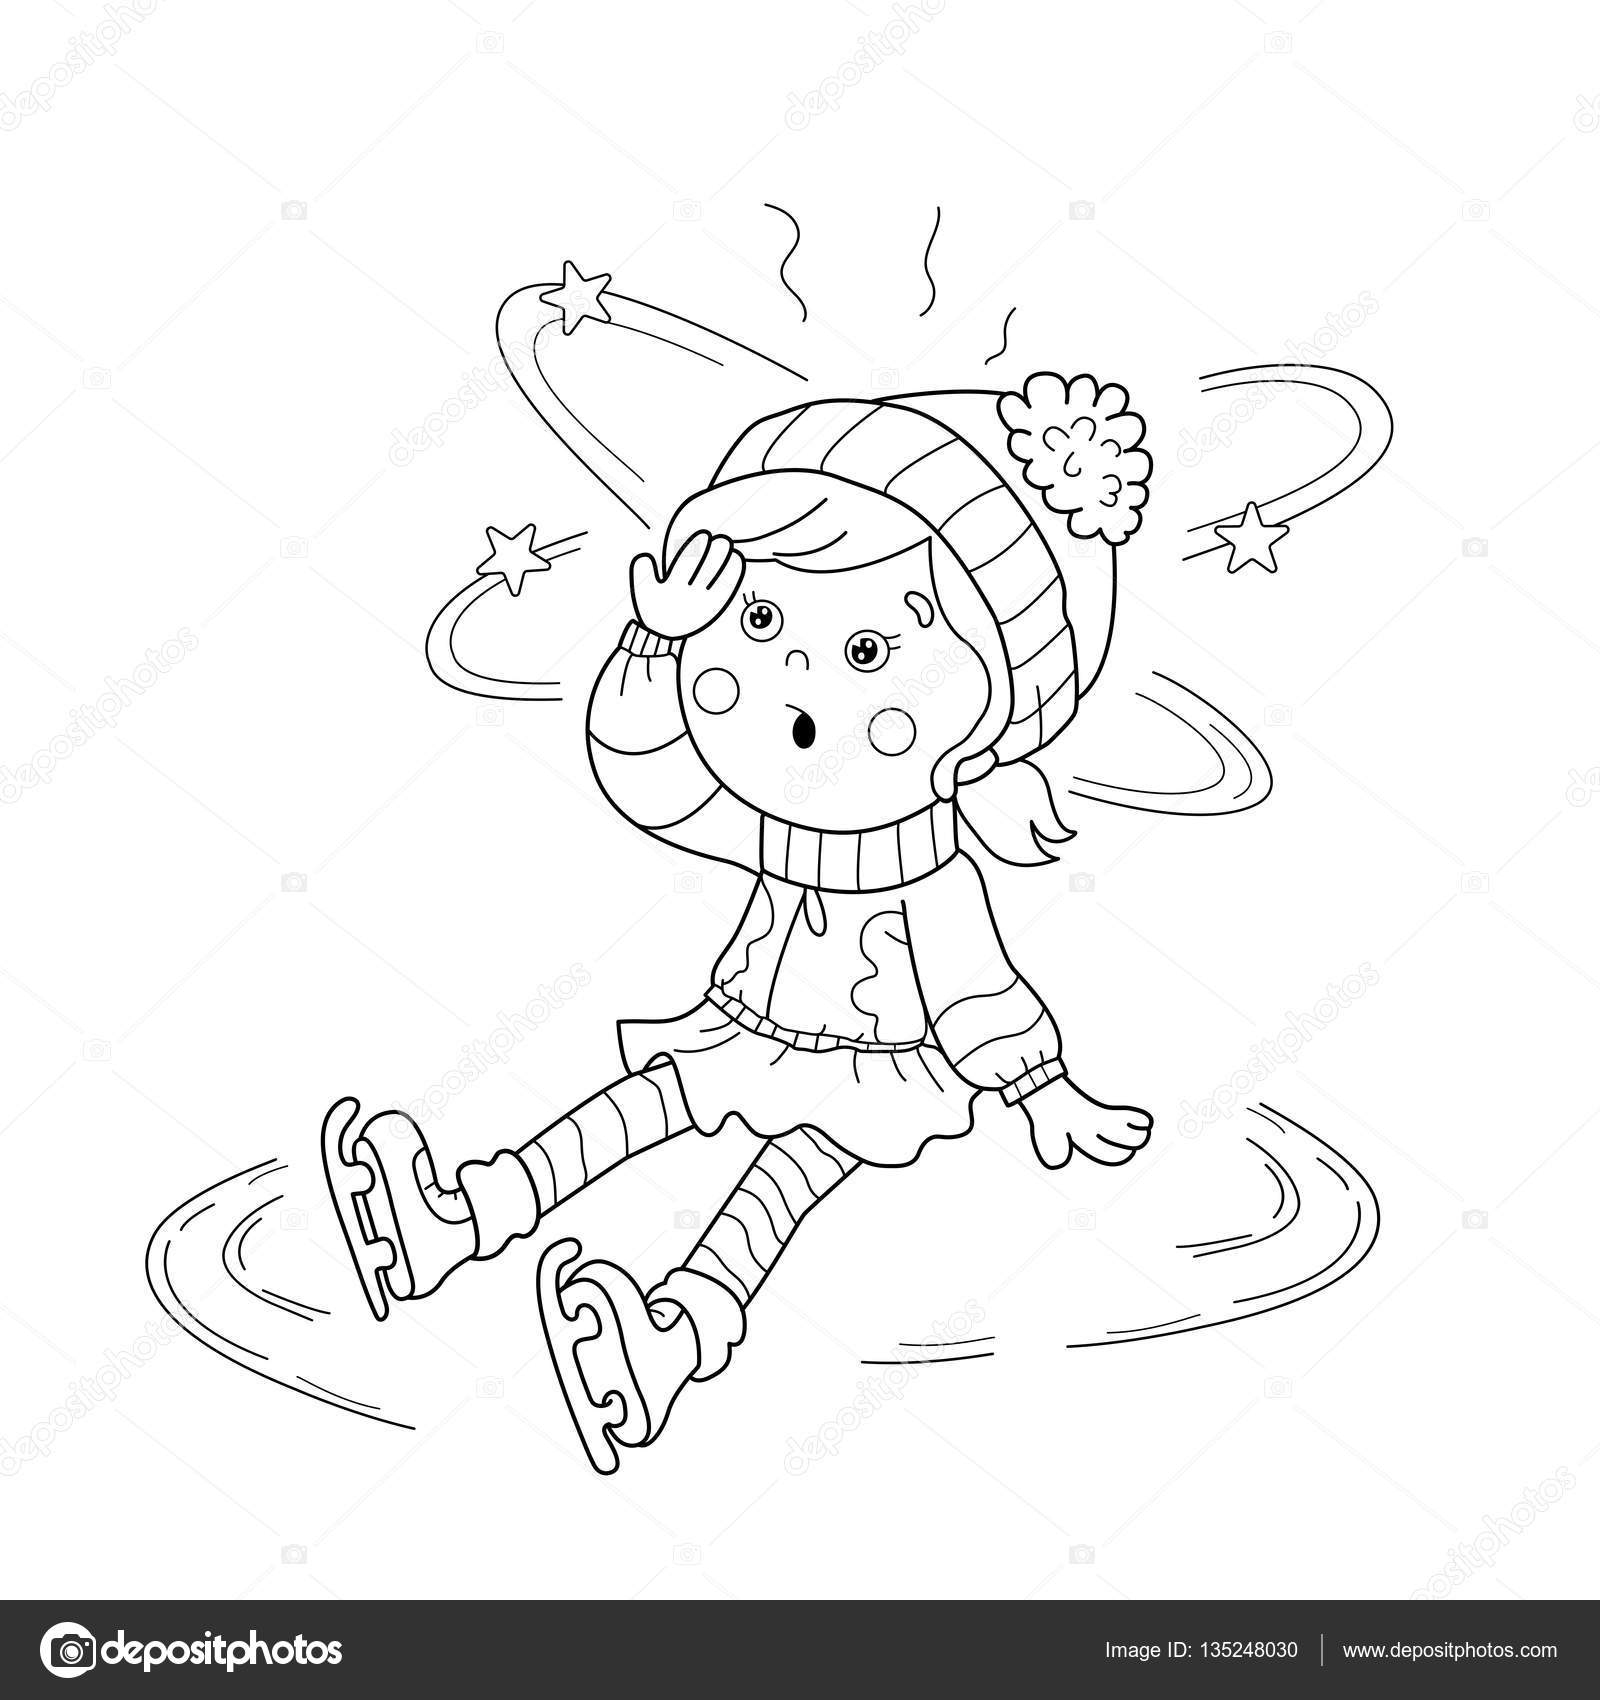 coloring page outline of cartoon girl skating winter sports sudden drop coloring book for kids stock illustration - Sports Coloring Book